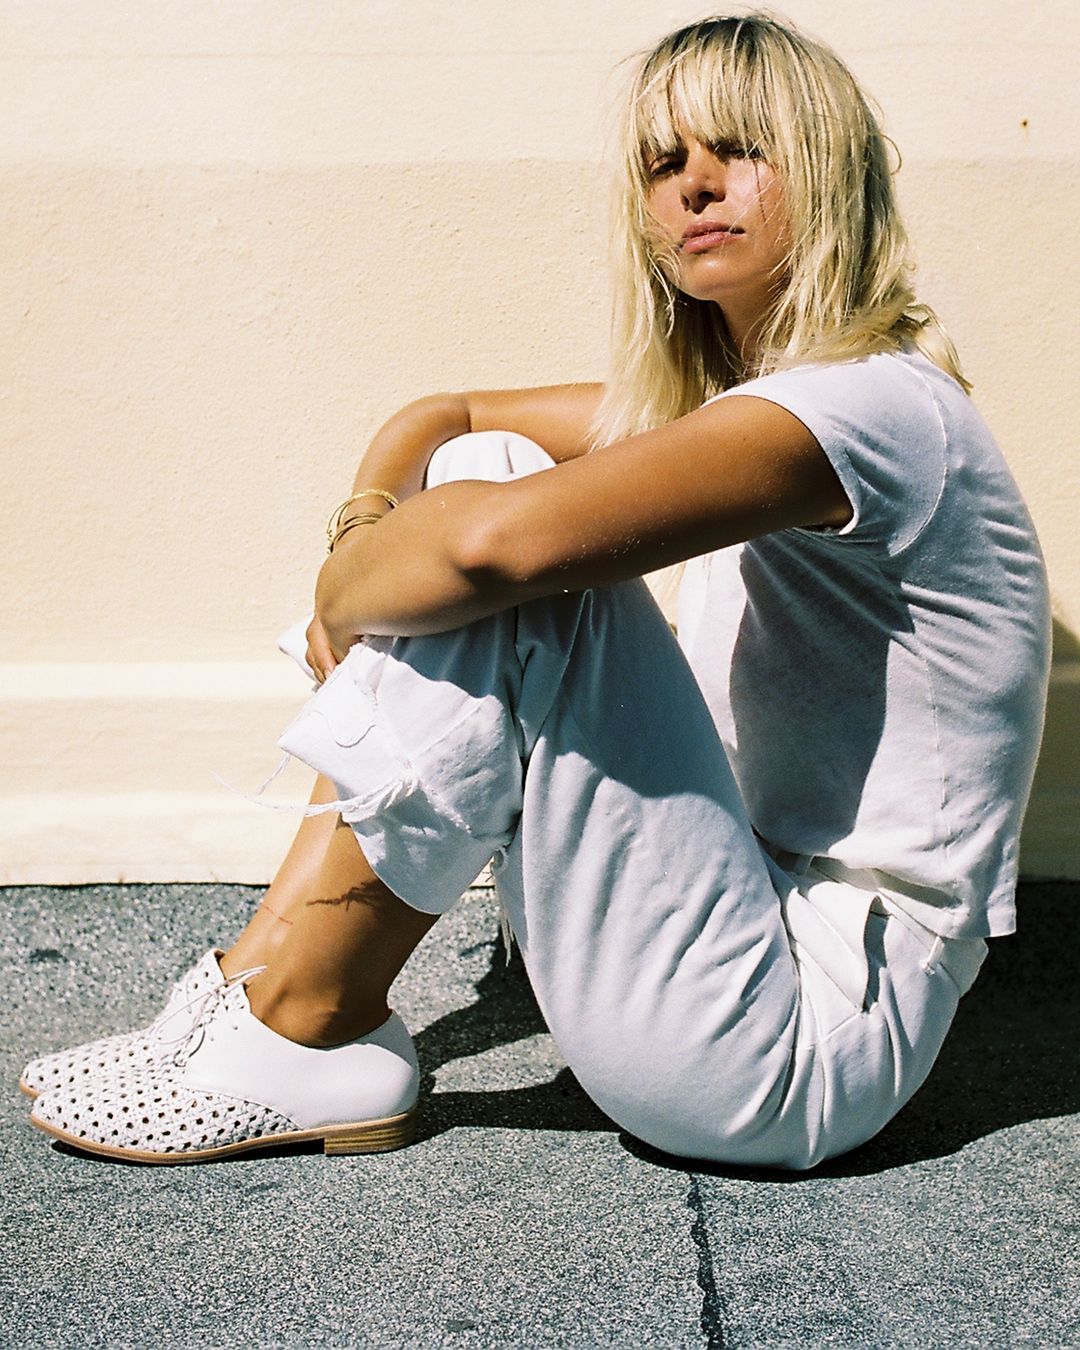 Bared_Footwear_Womens_Collaboration_Anna_Feller_White_Cockatoo_Woven_Lace_Ups_Sydney